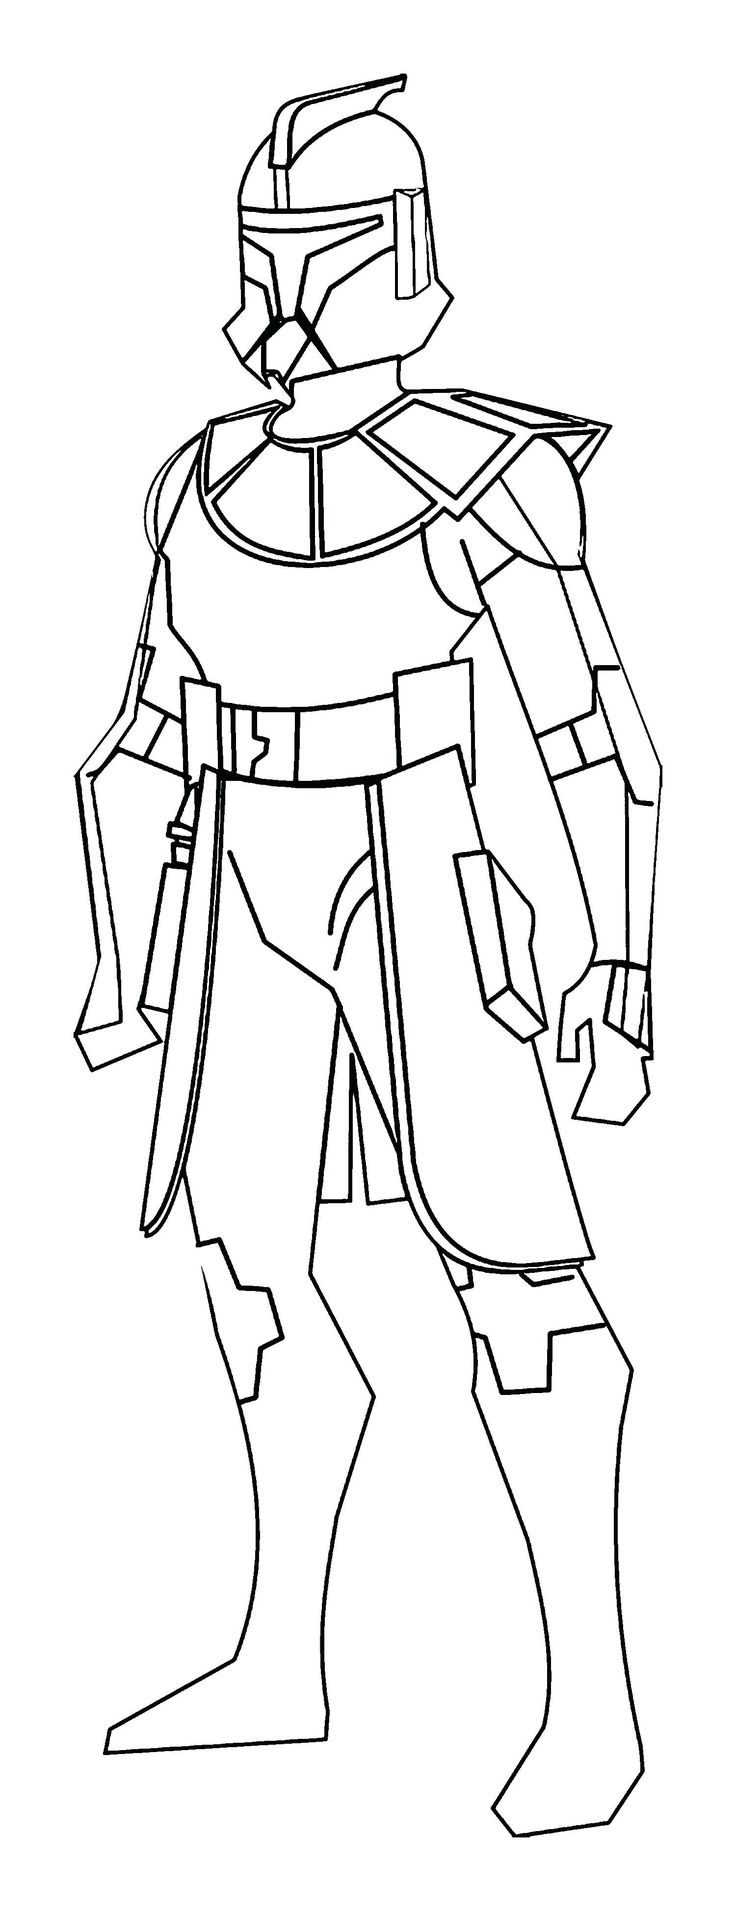 star wars coloring page star wars free coloring pages to print free coloring sheets wars coloring page star